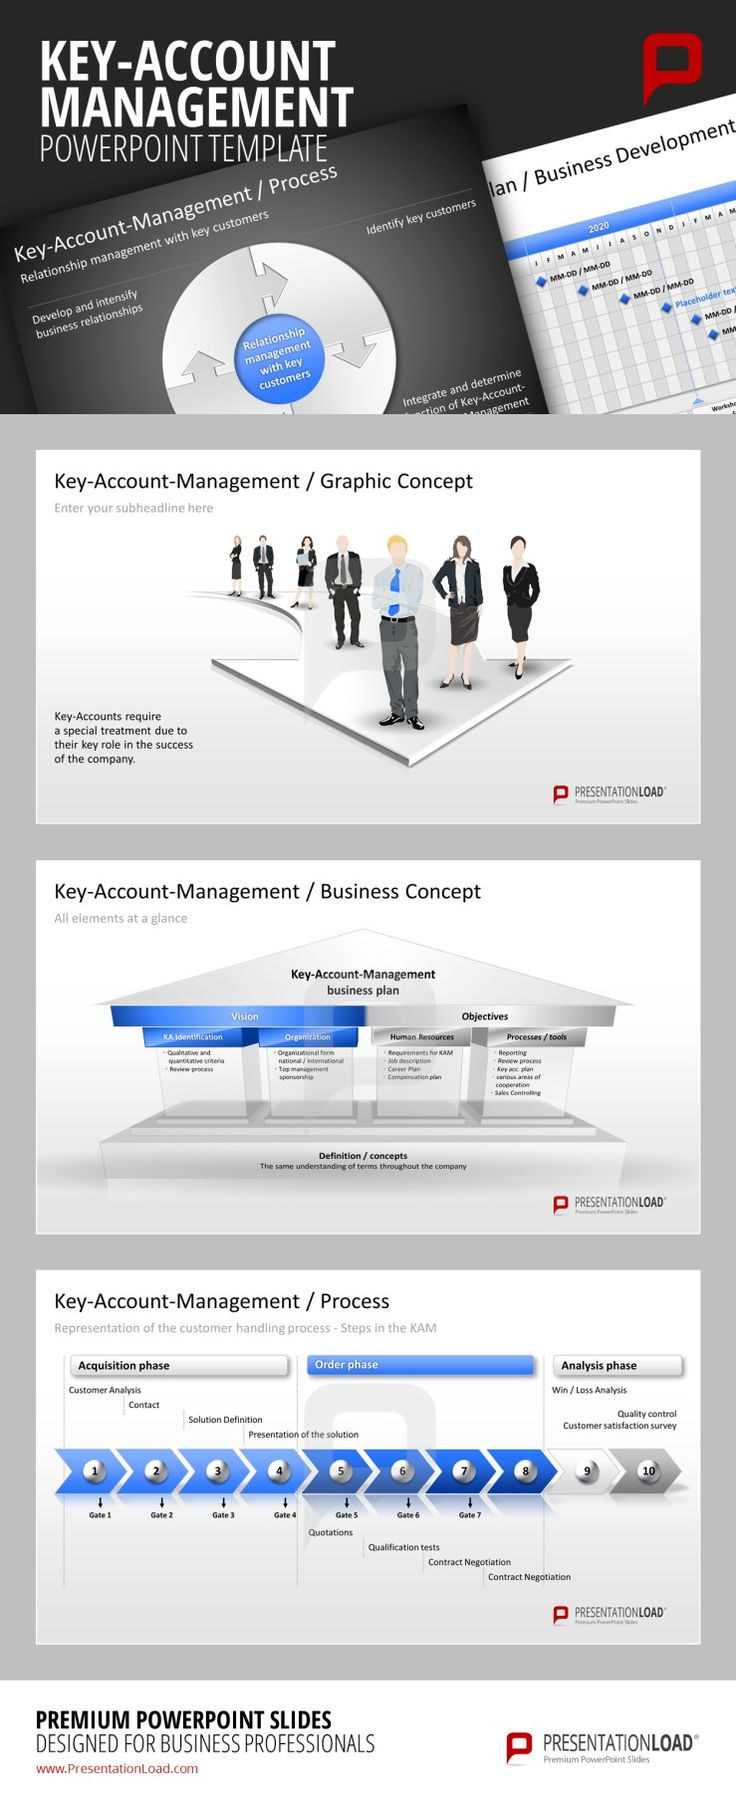 key account management planning So here's how to create a key account planning tool that enables these strategic  accounts to undergo the proactive planning and management.